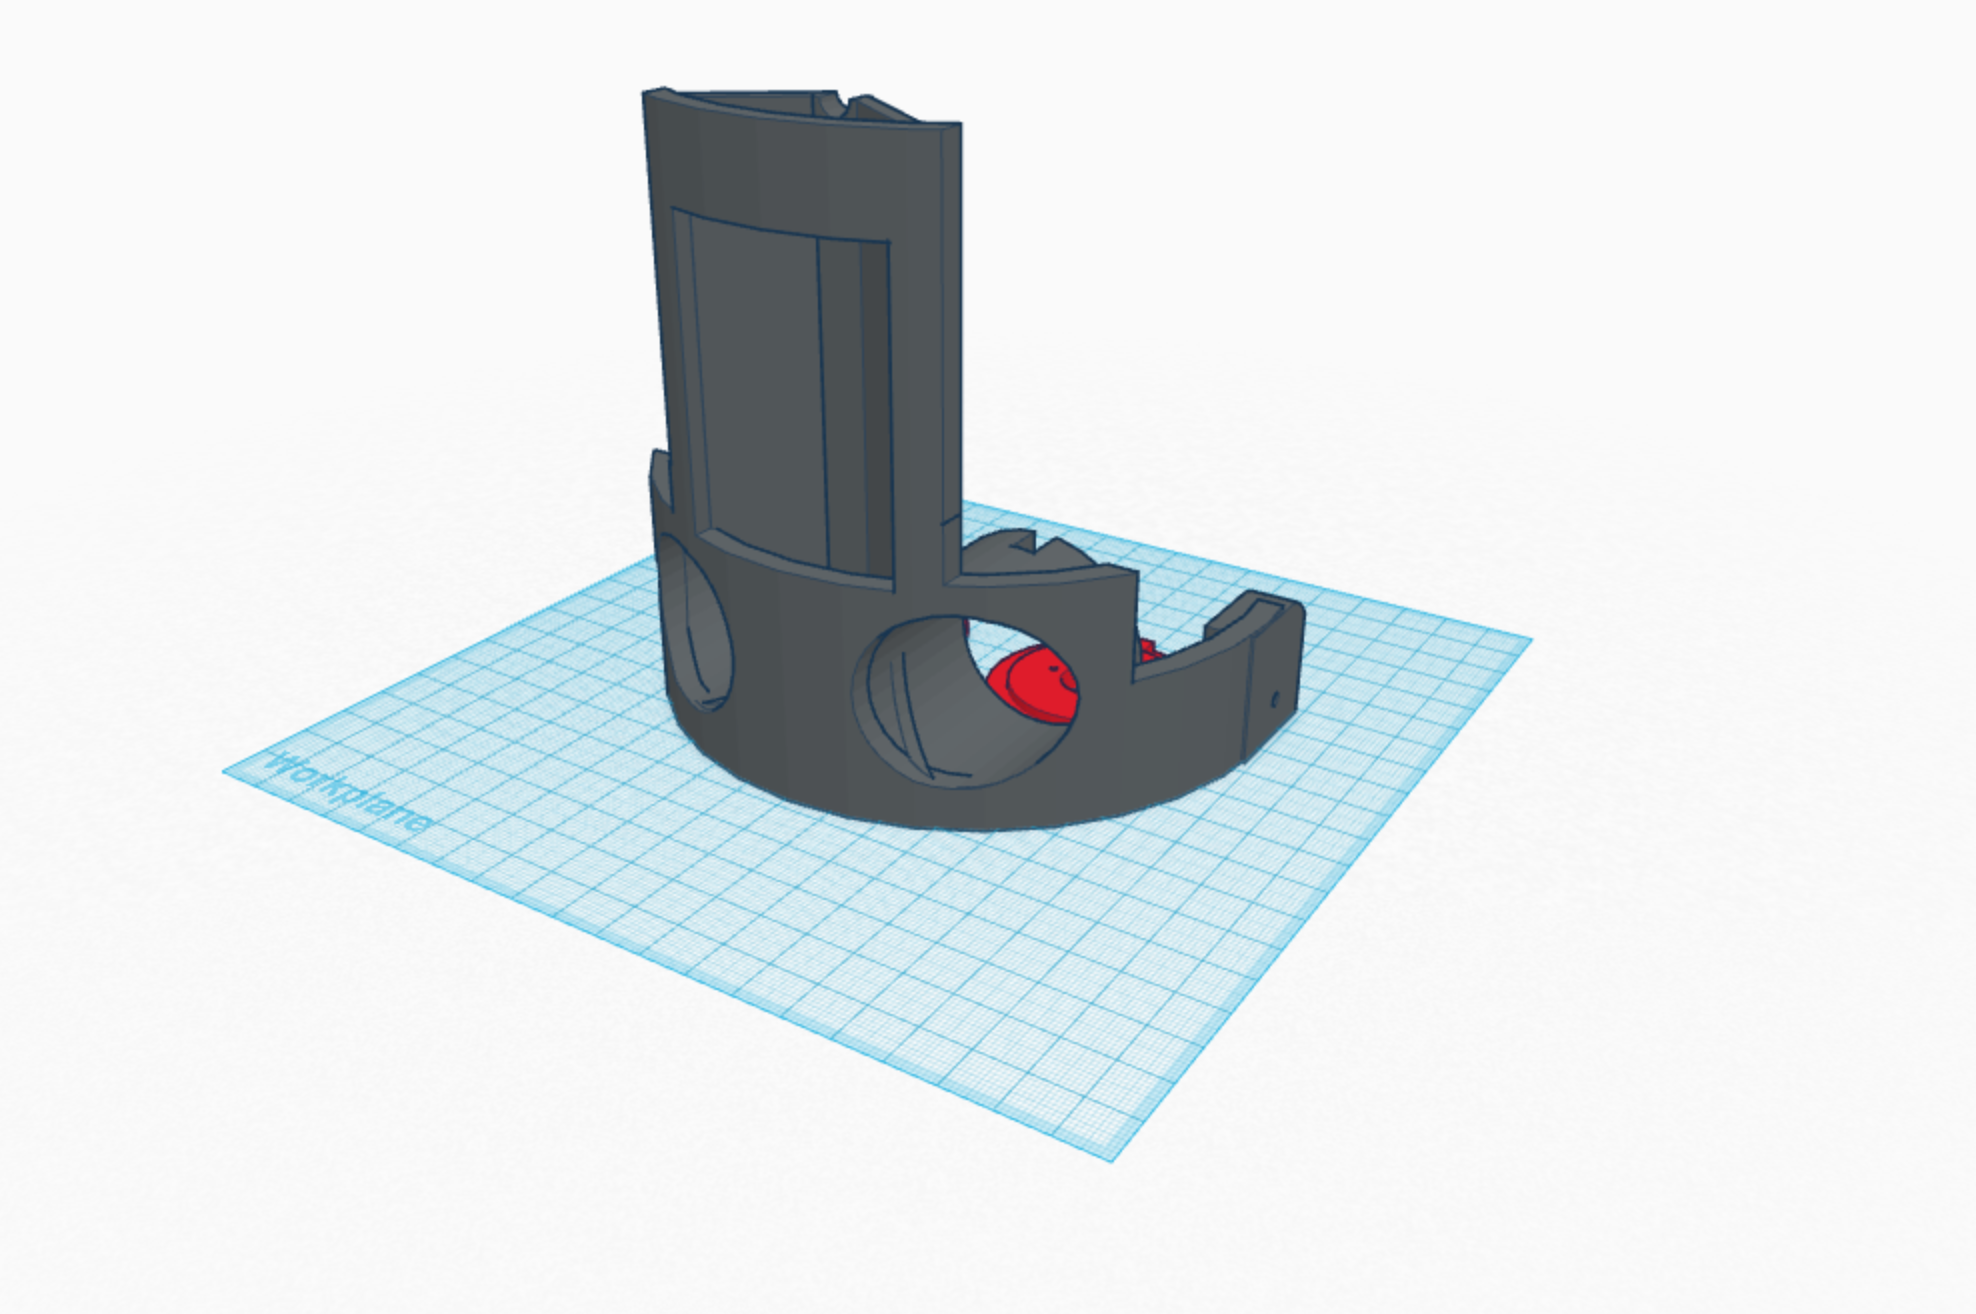 AX03 face plate for 3D printing. The trusty Star Lord mask mounts to this face plate which then mounts to the neck assembly.